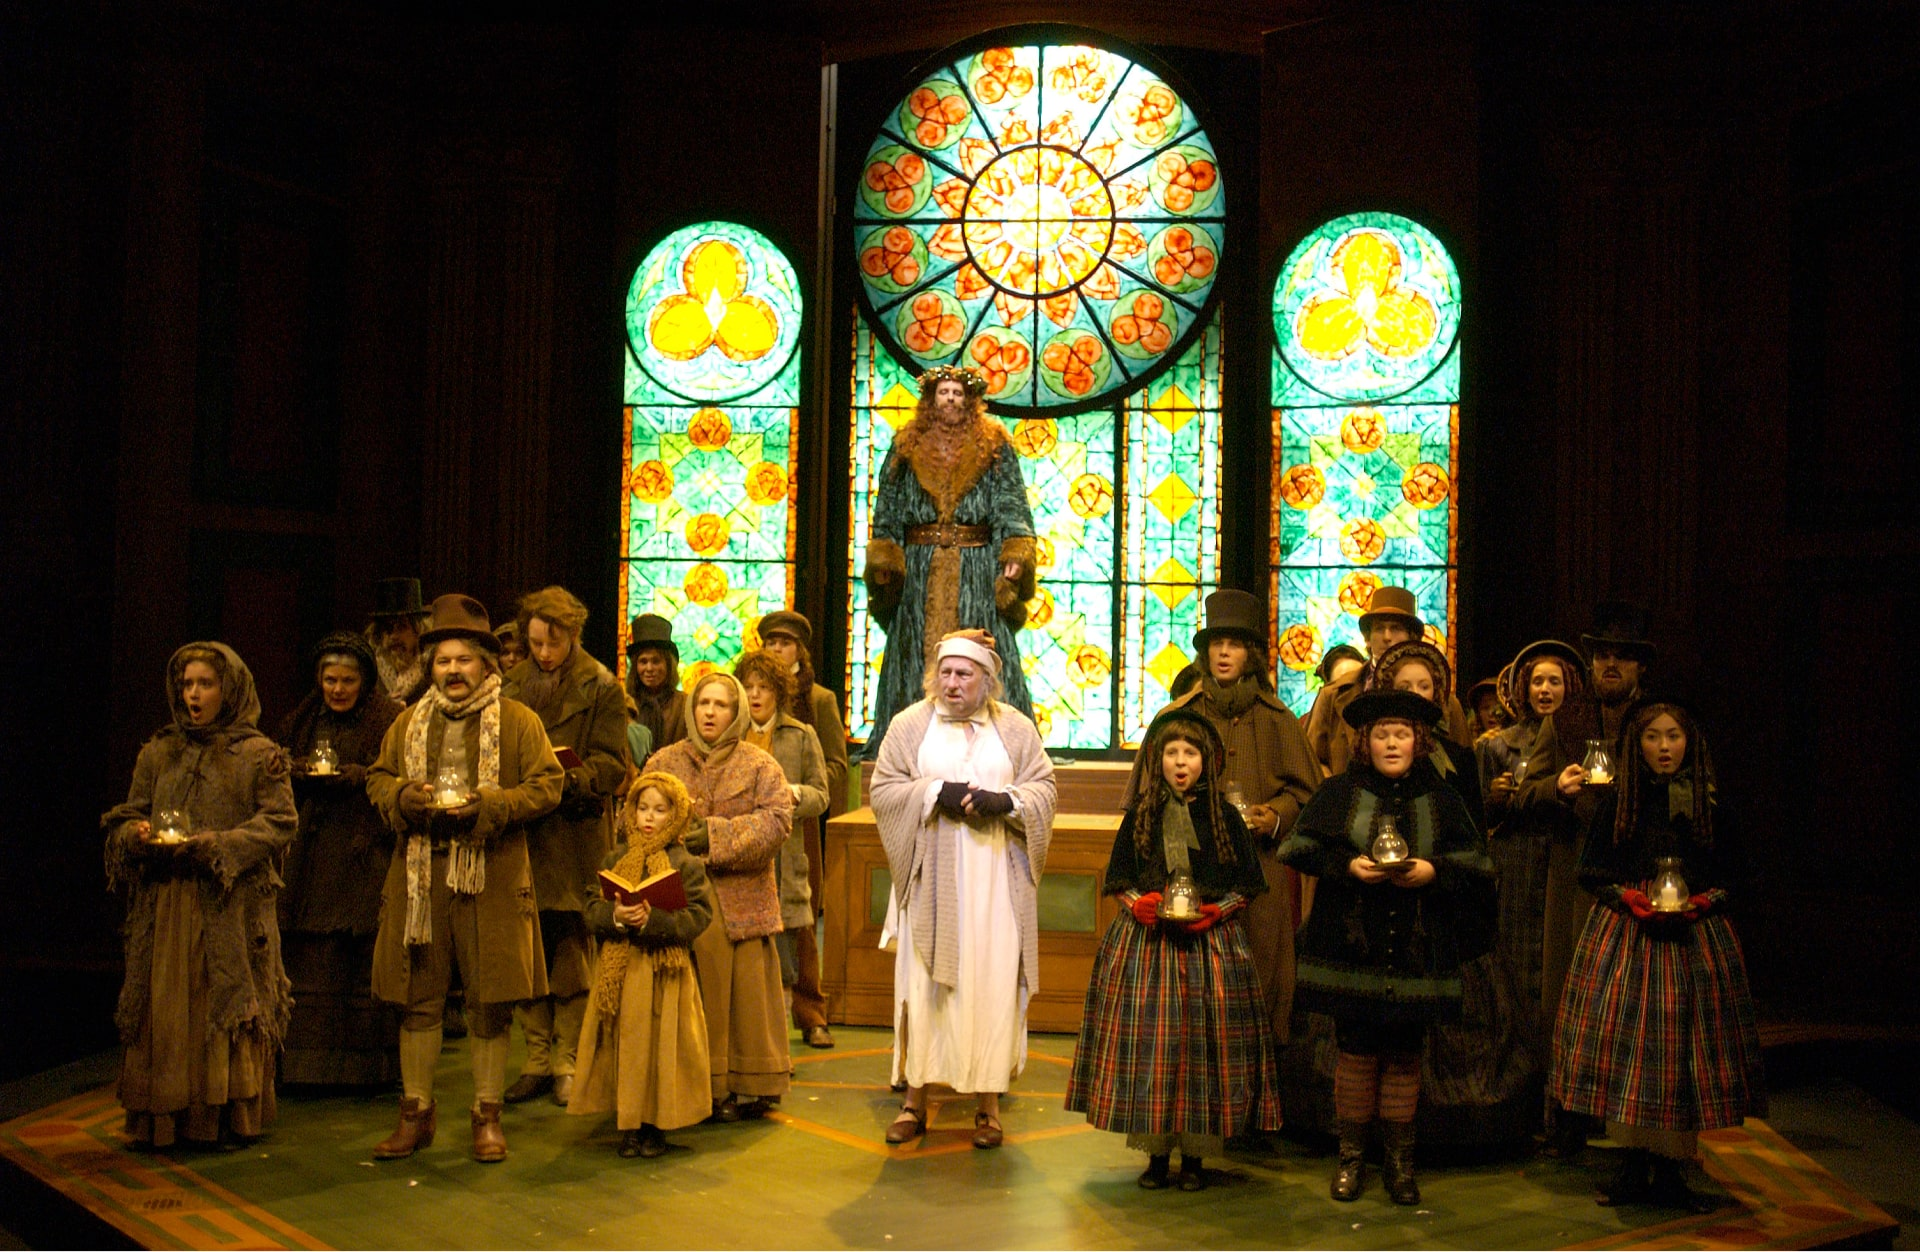 Man in nightclothes stands among Victorian carollers, watched Father Christmas in front of stained-glass window.